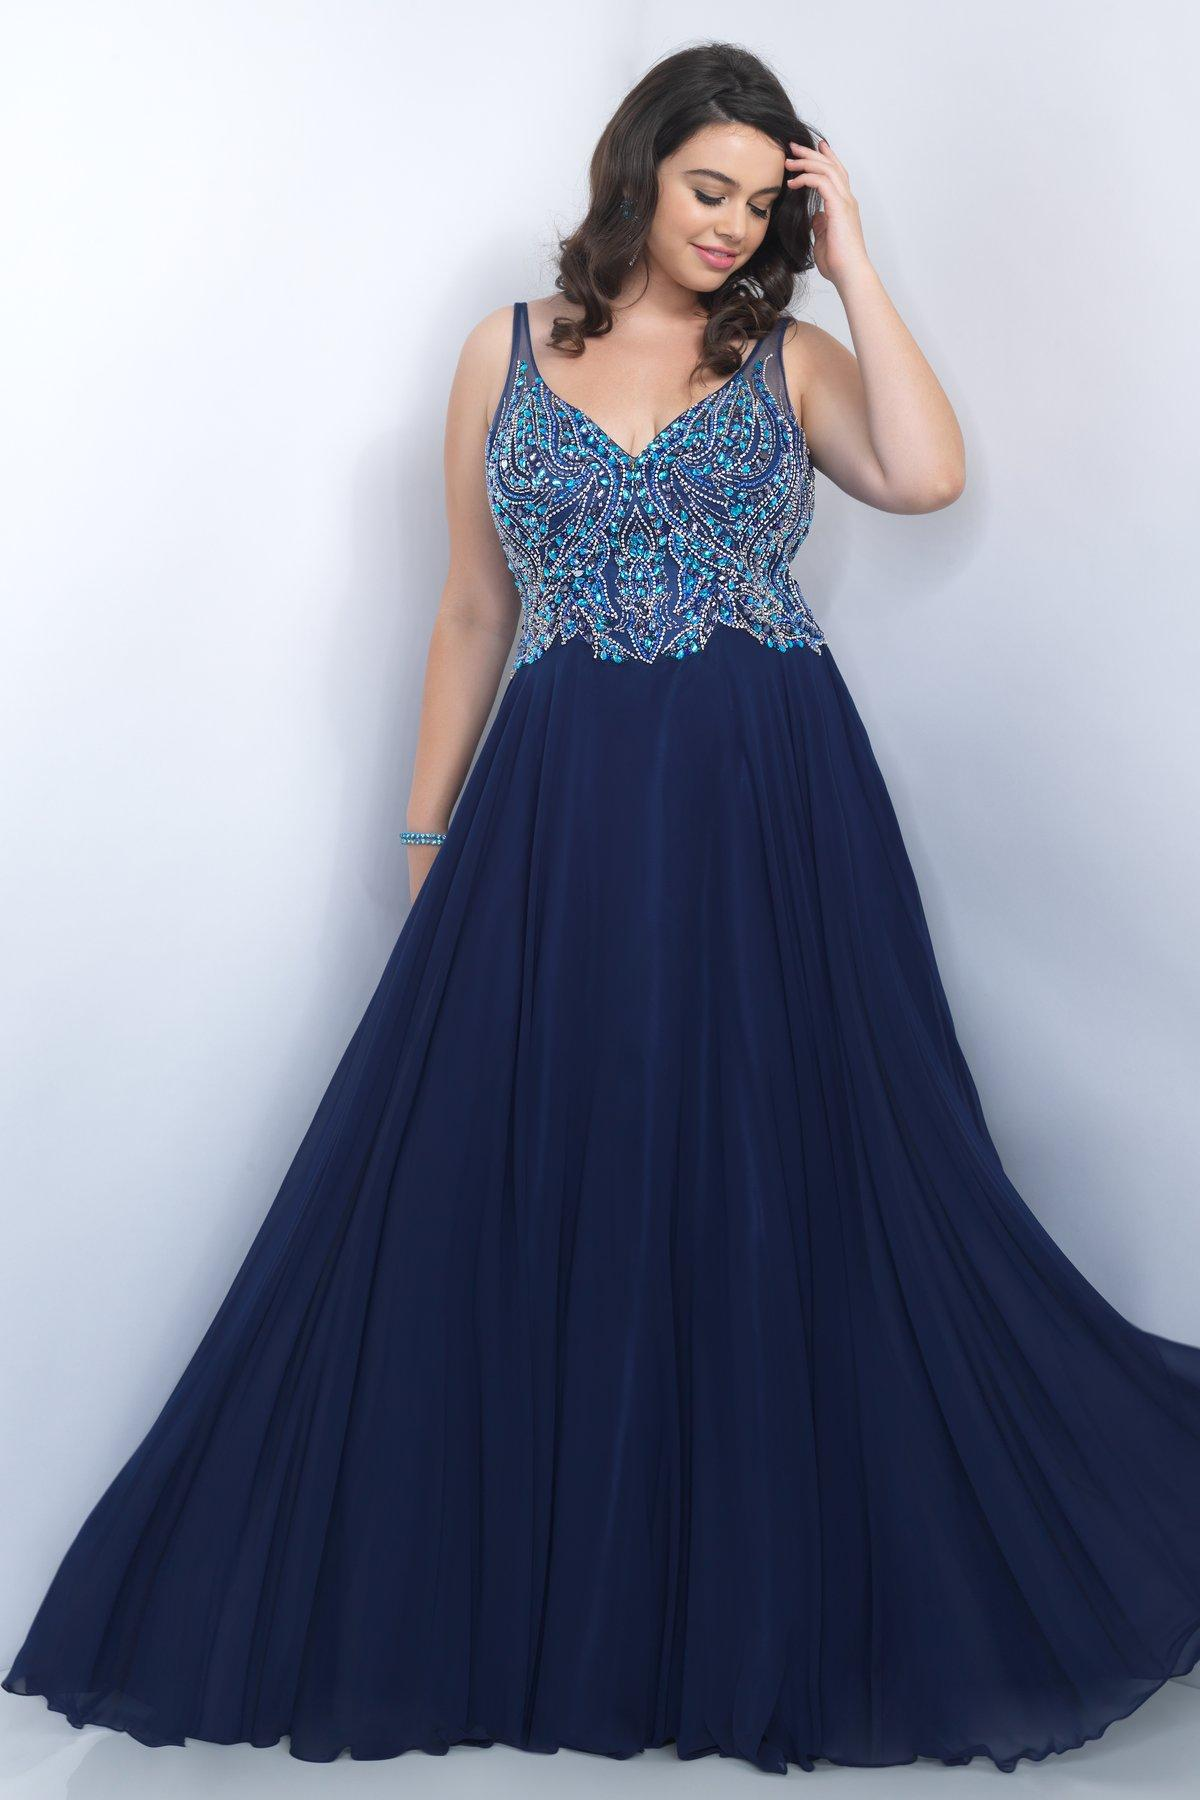 Size Womens Navy V Neck 2016 Plus Size Prom Evening Gowns Dresses ...